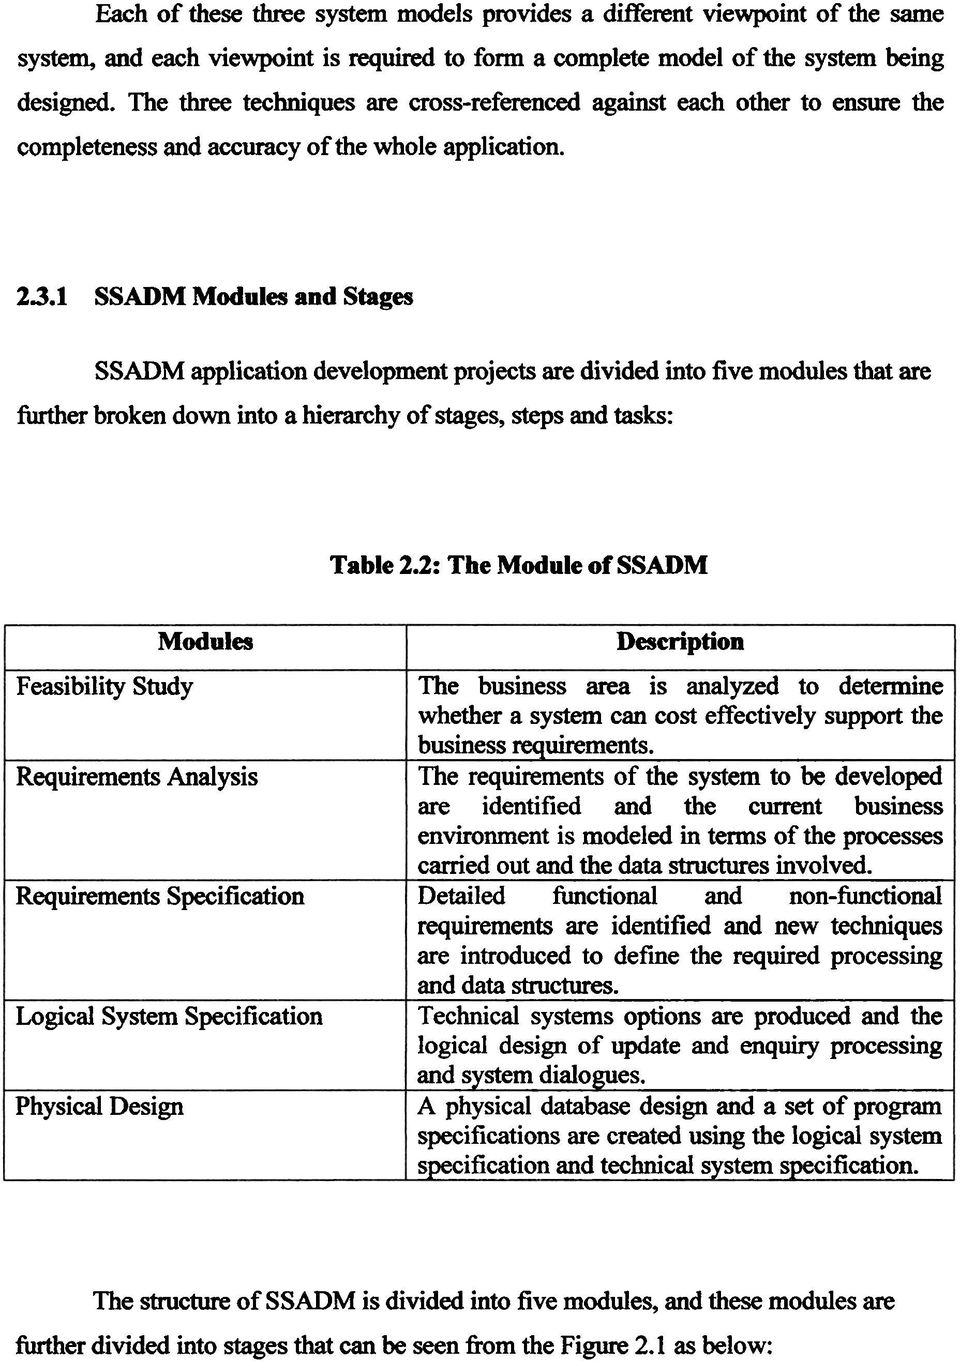 1 SSADM Modules and Stages SSADM application development projects are divided into five modules that are Mer broken down into a hierarchy of stages, steps and tasks: Table 2.